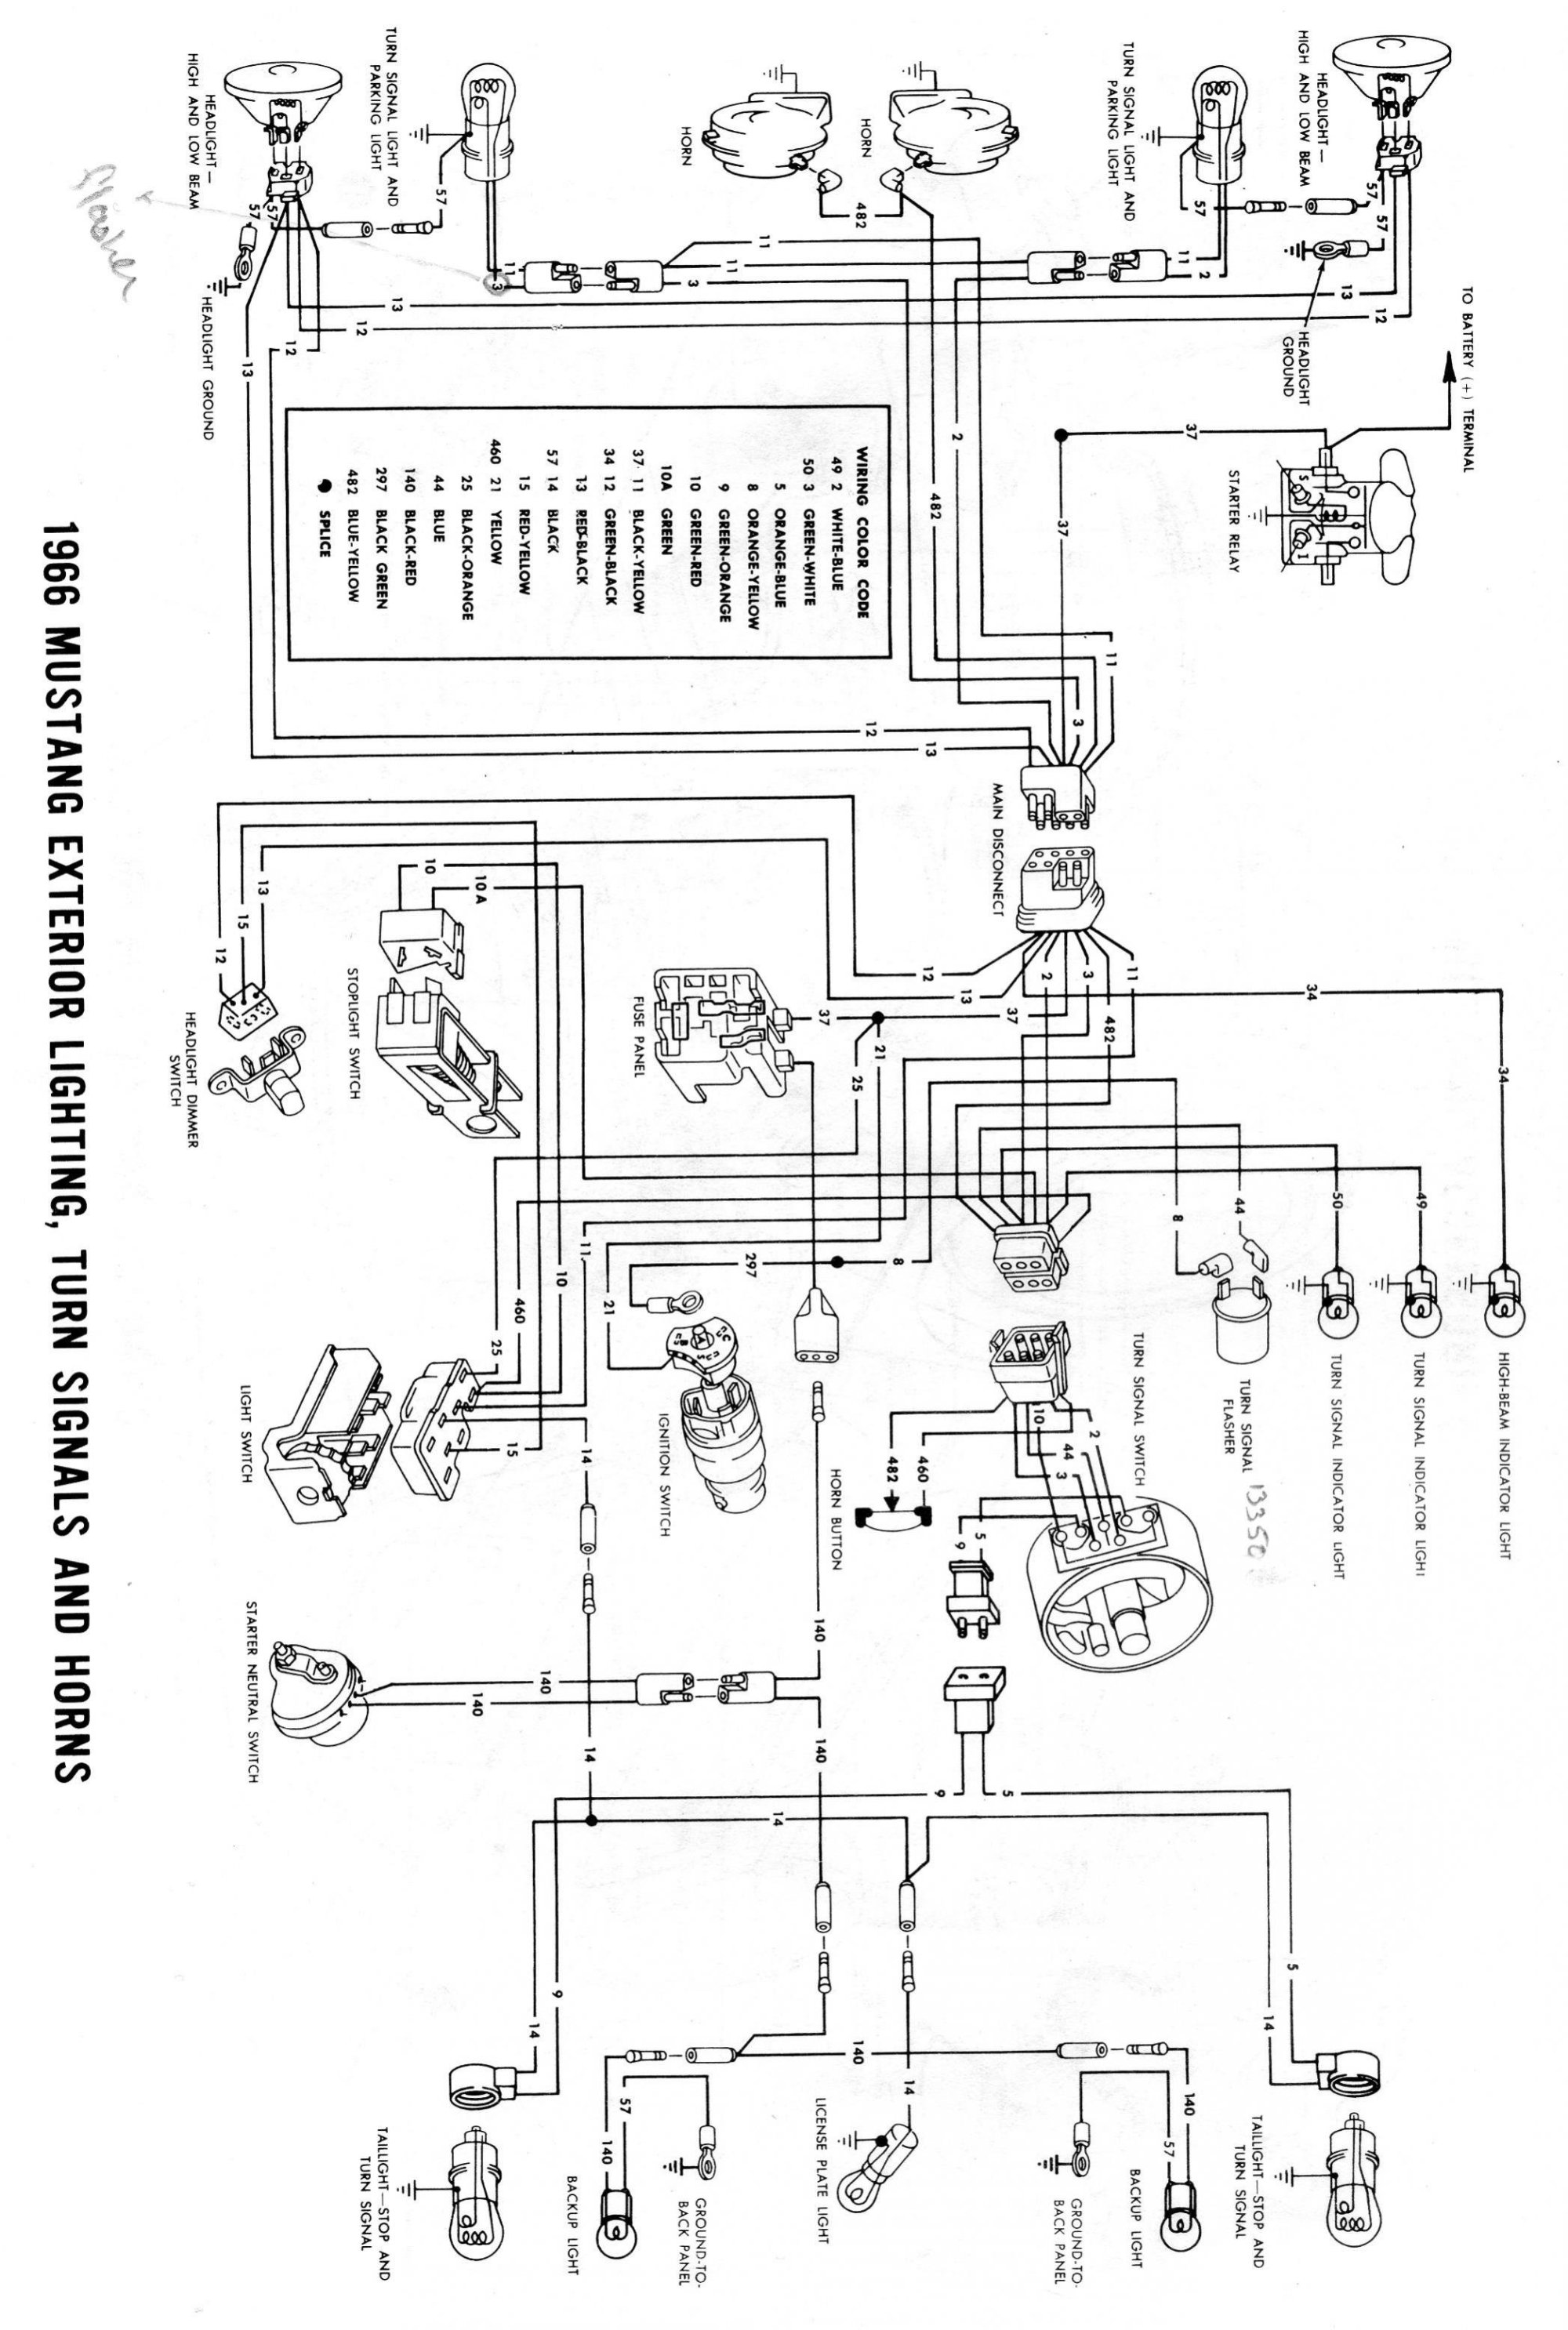 hight resolution of 1972 ford turn signal wiring data diagram schematic 1972 ford turn signal wiring